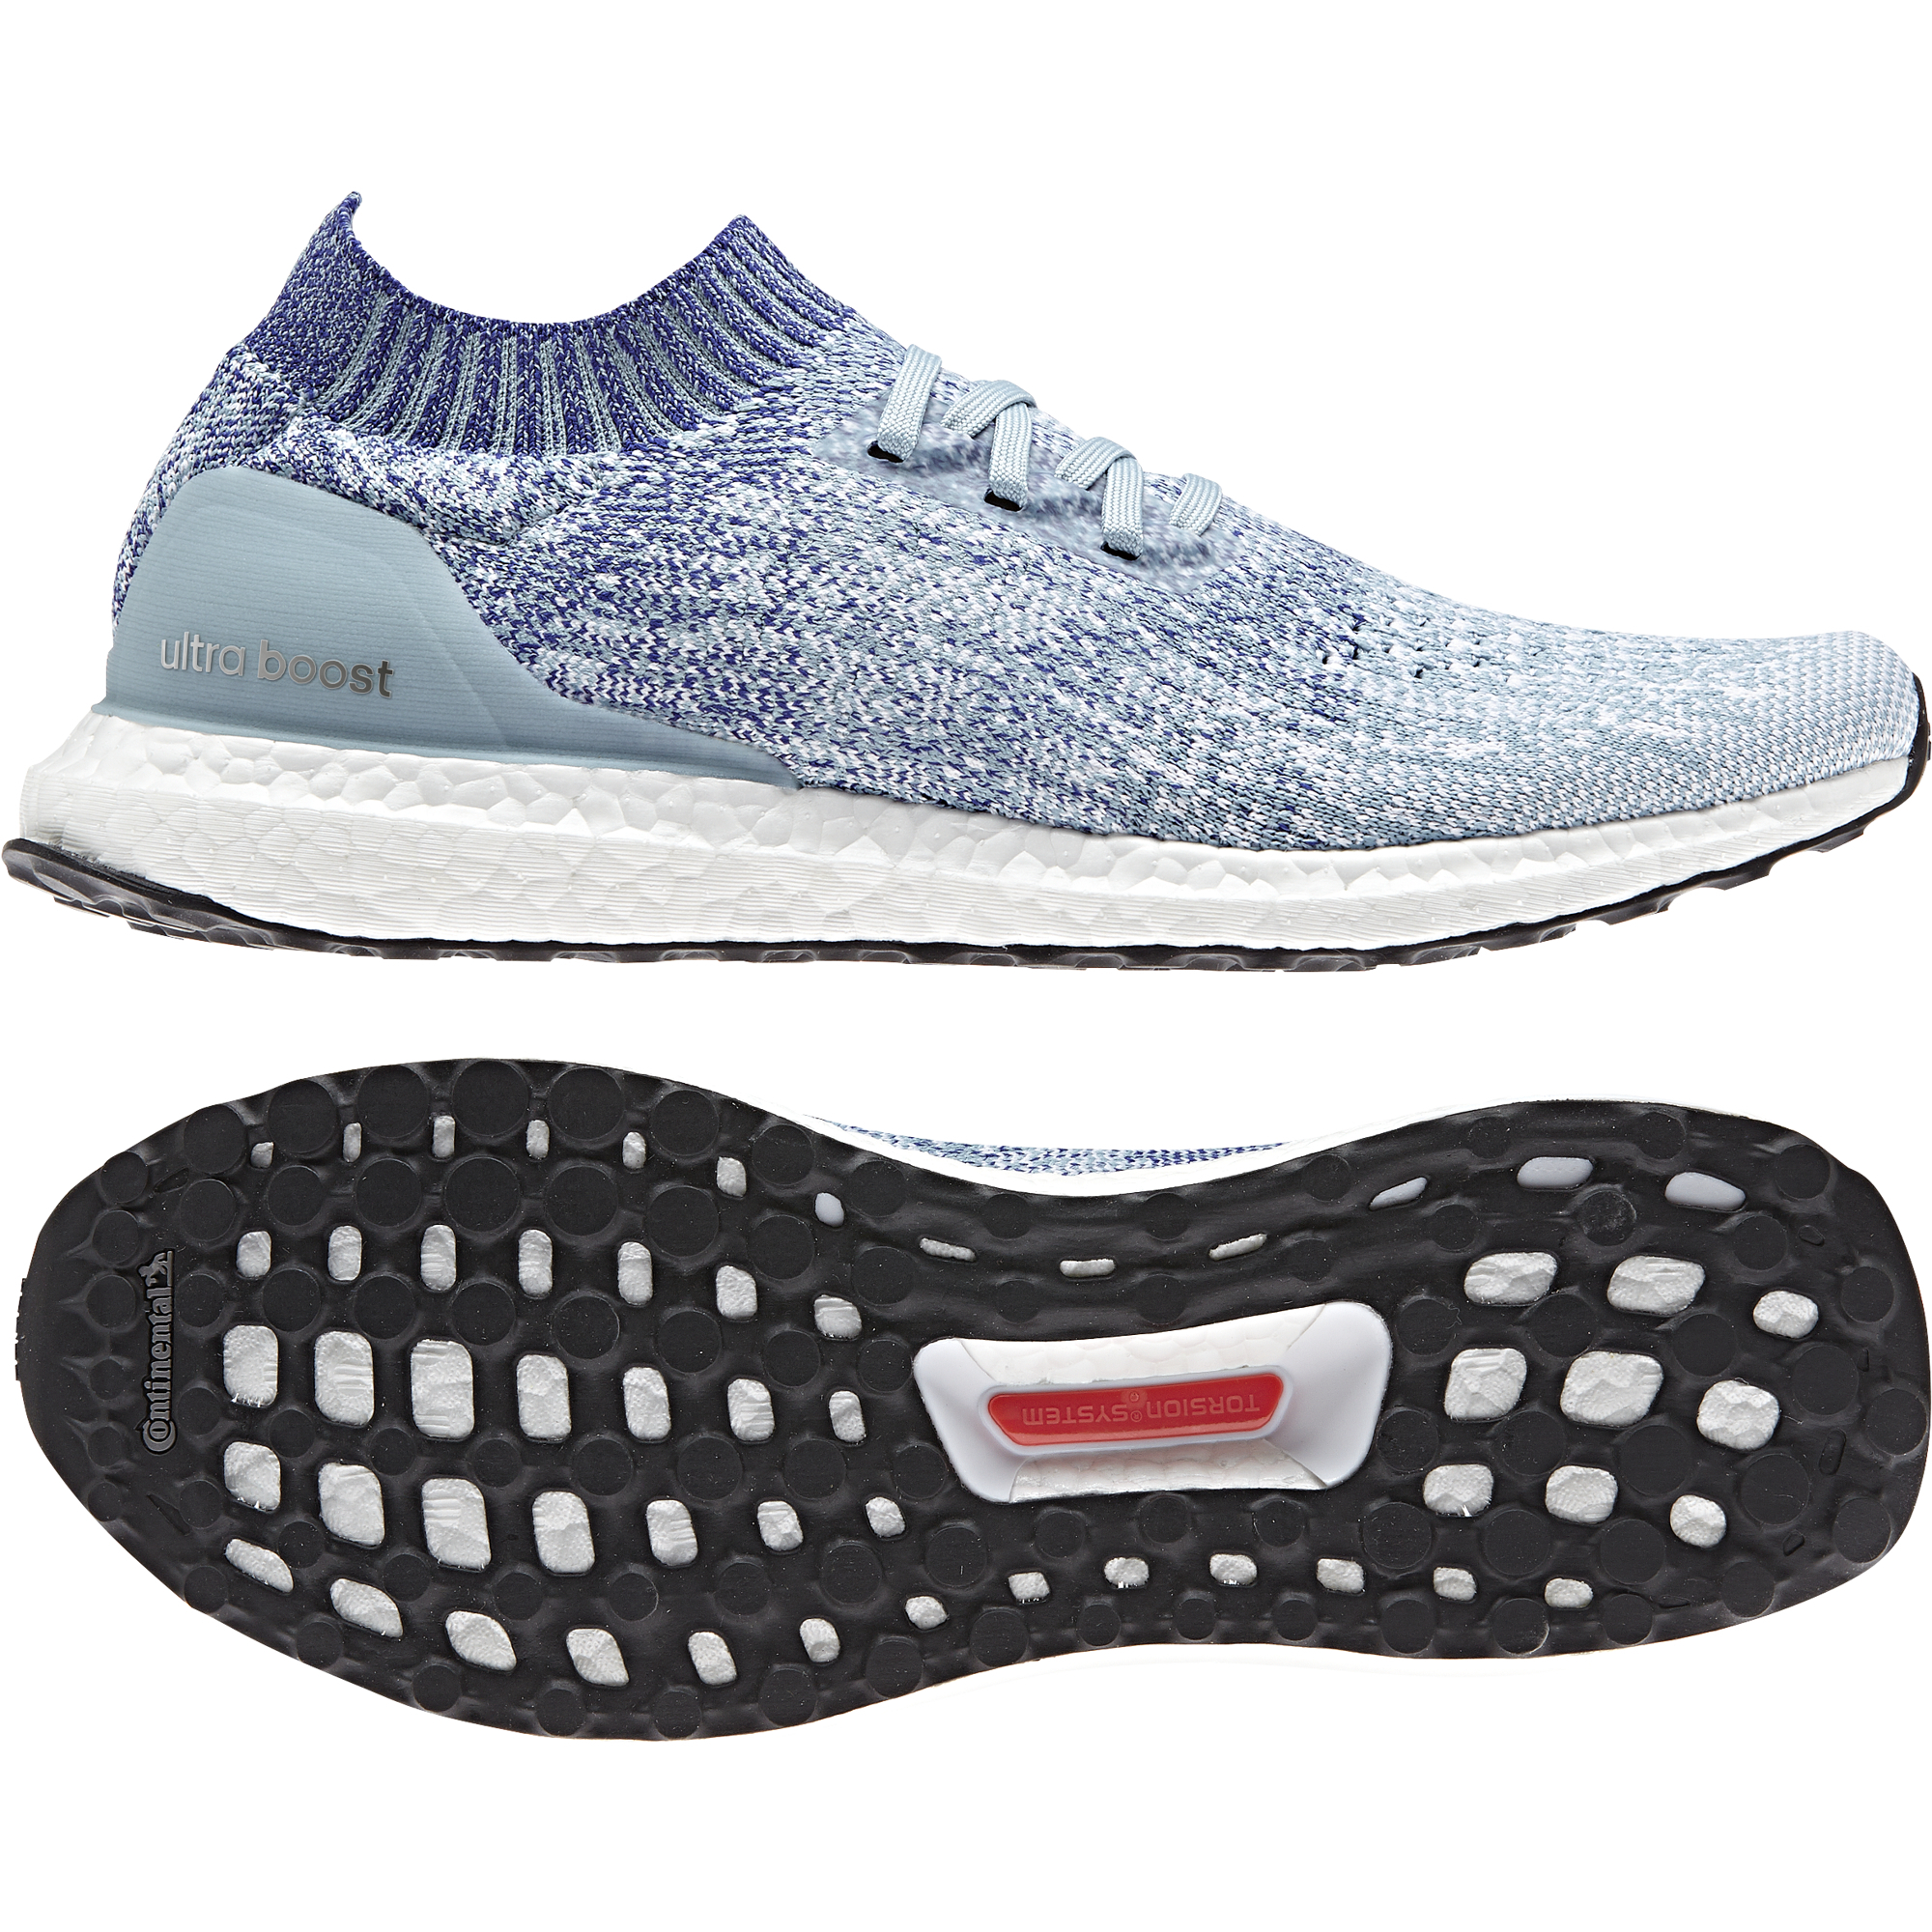 San Francisco 0bdce 7d4c4 Chaussures adidas Ultraboost Uncaged